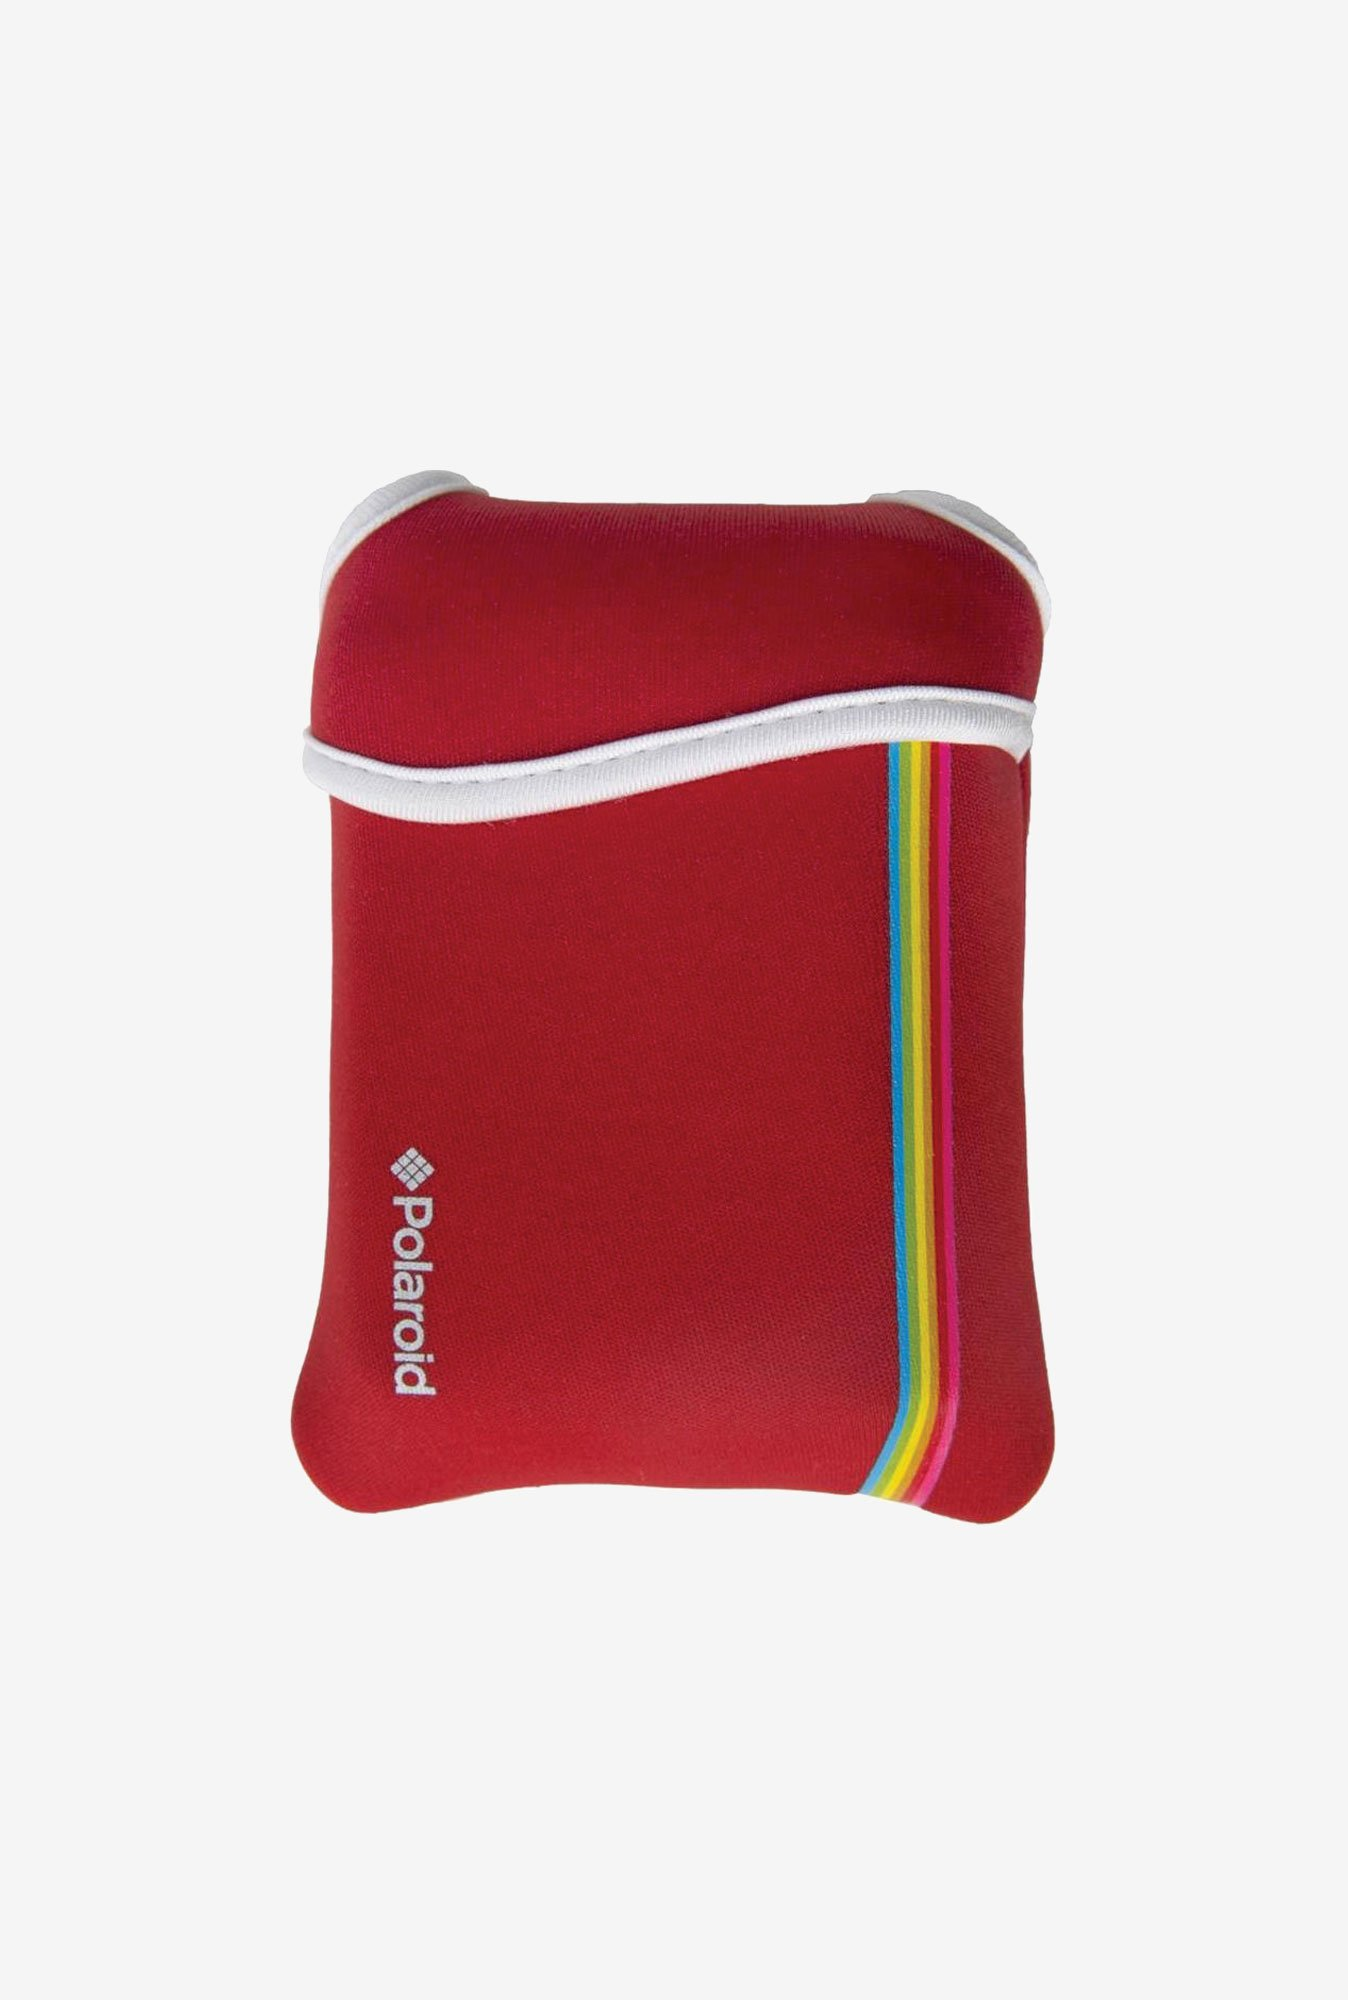 Polaroid Neoprene Pouch for Polaroid Instant Camera (Red)